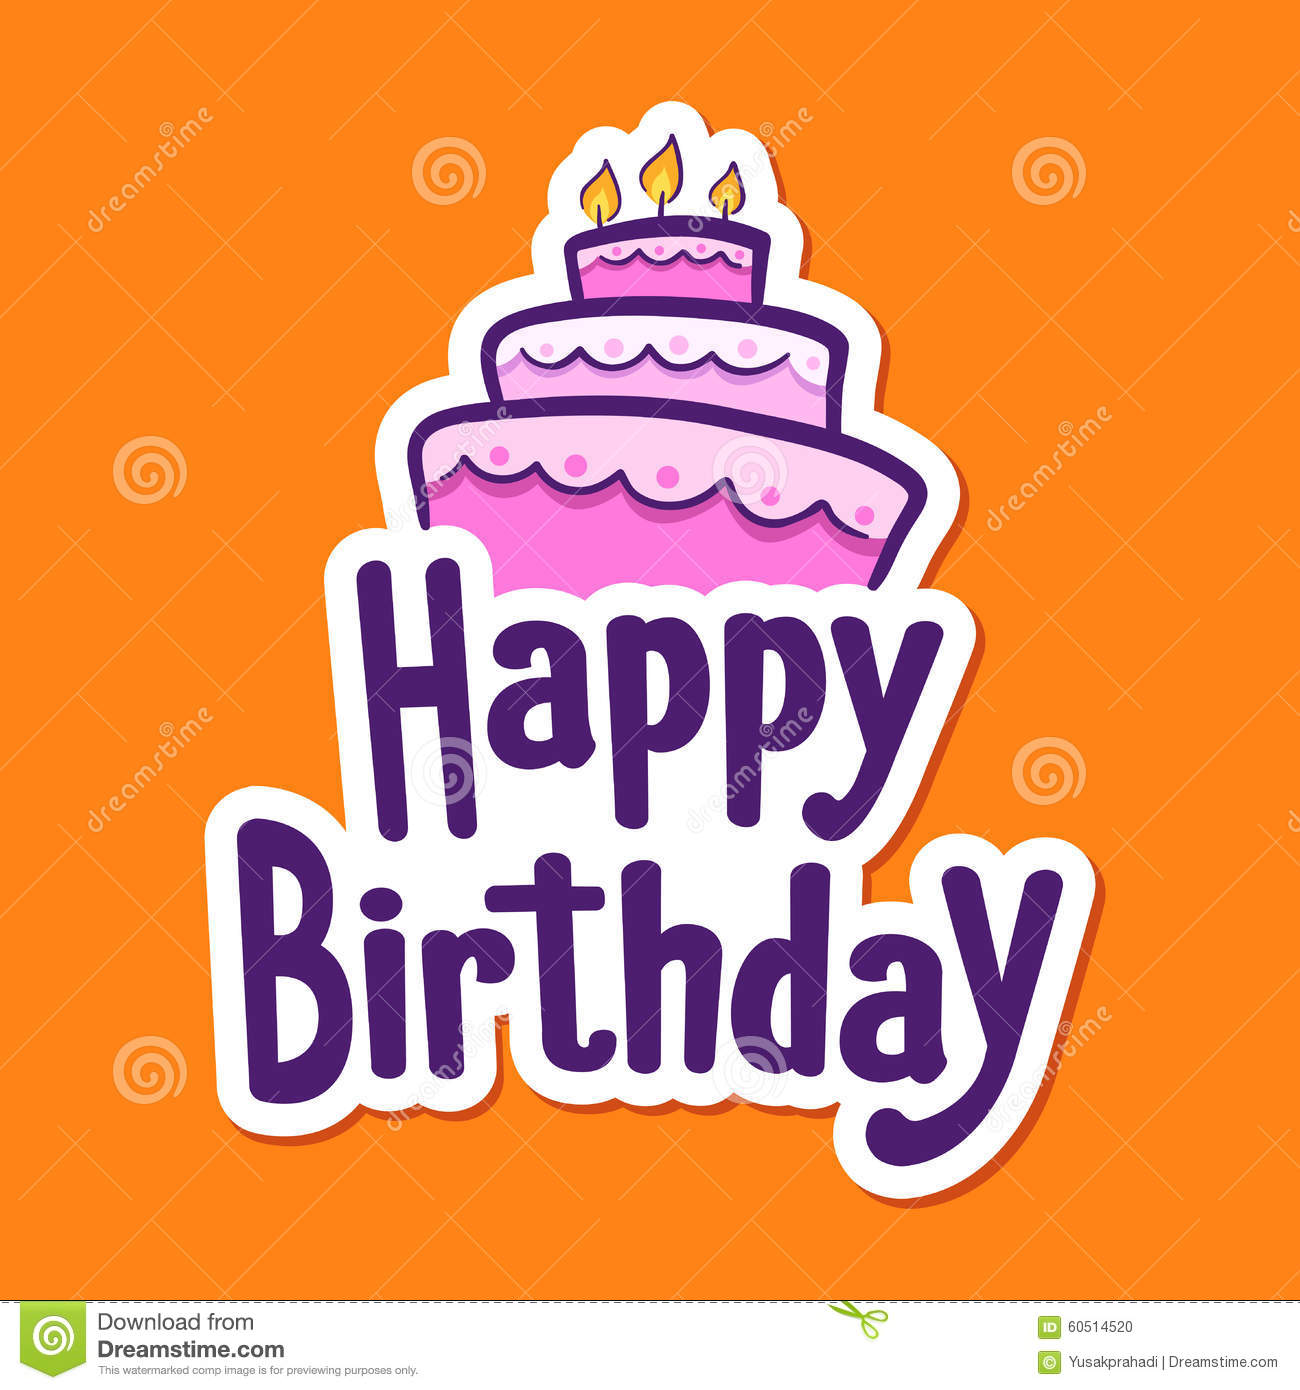 Happy Birthday Greetings With Cake On Top Stock Vector